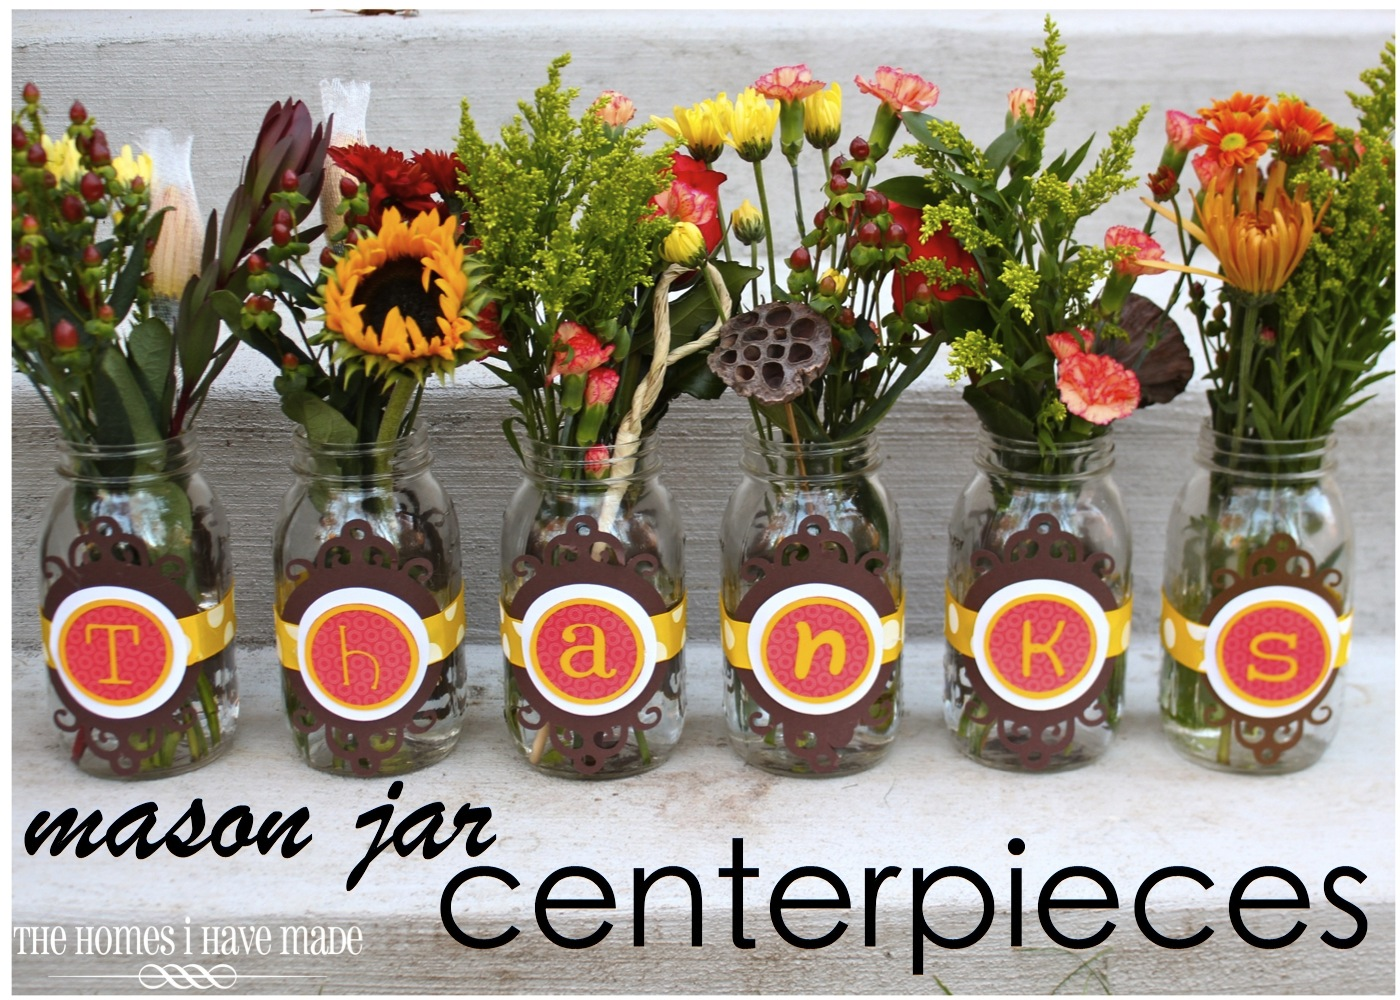 Mason jar centerpieces holiday project the homes i